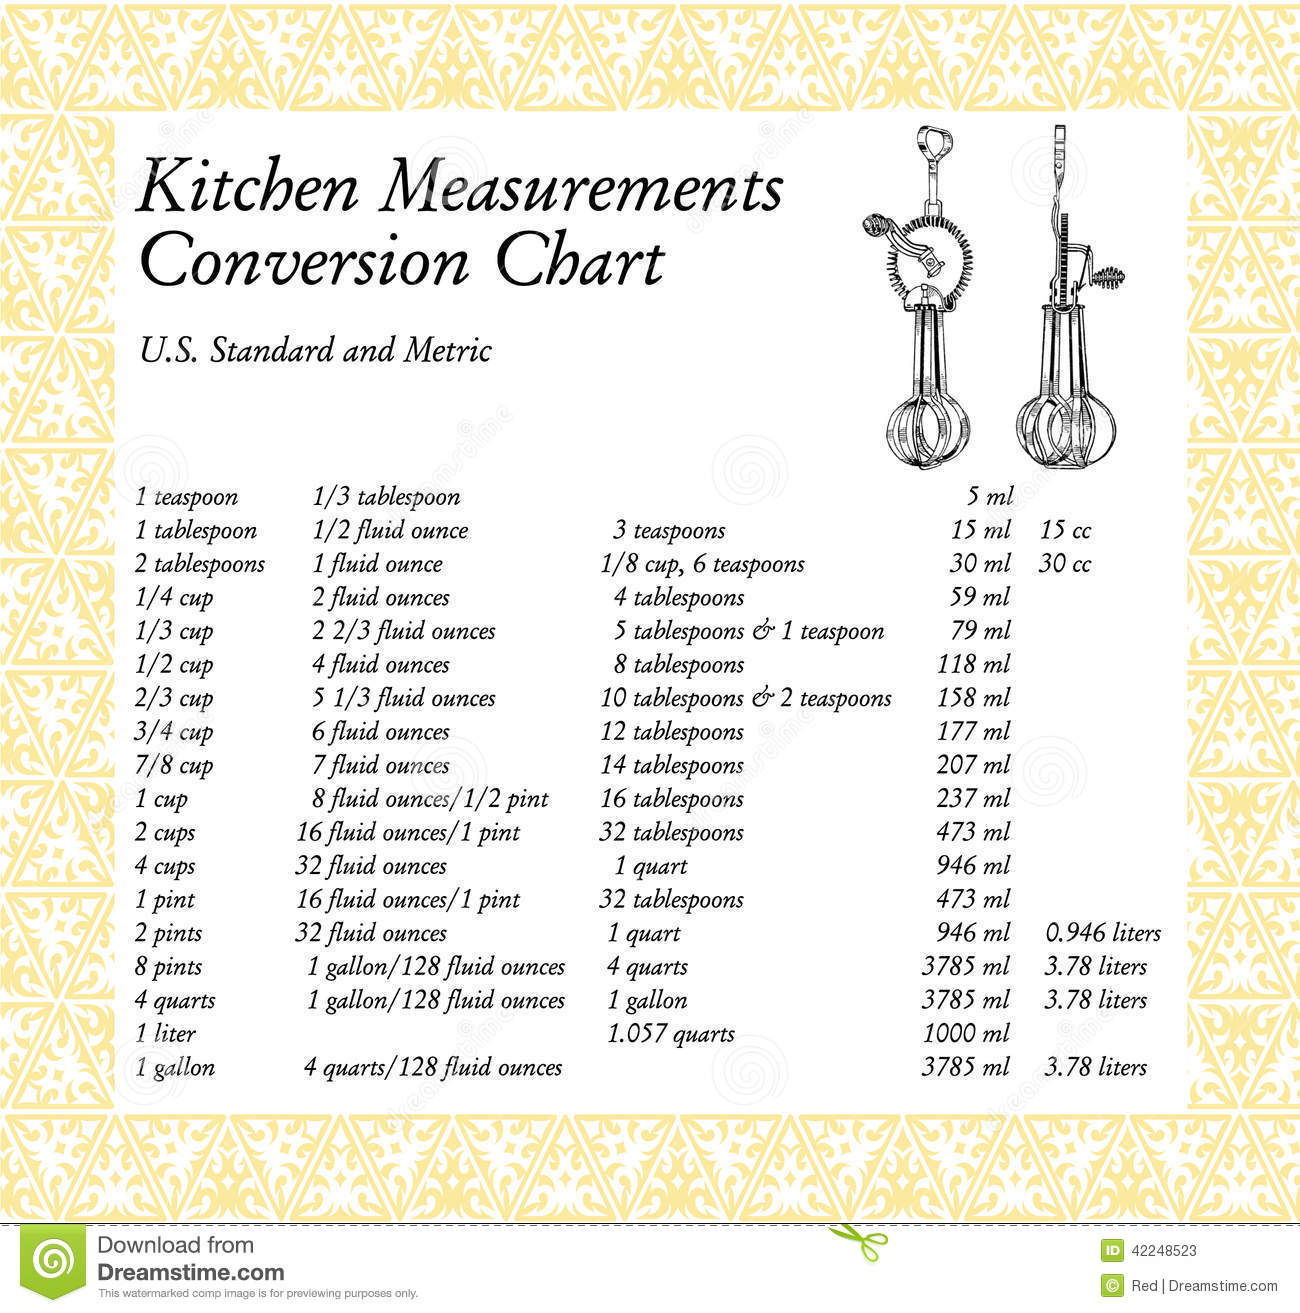 Conversion chart calculator images free any chart examples cooking conversion chart template aradio cooking conversion chart template nvjuhfo images nvjuhfo Choice Image